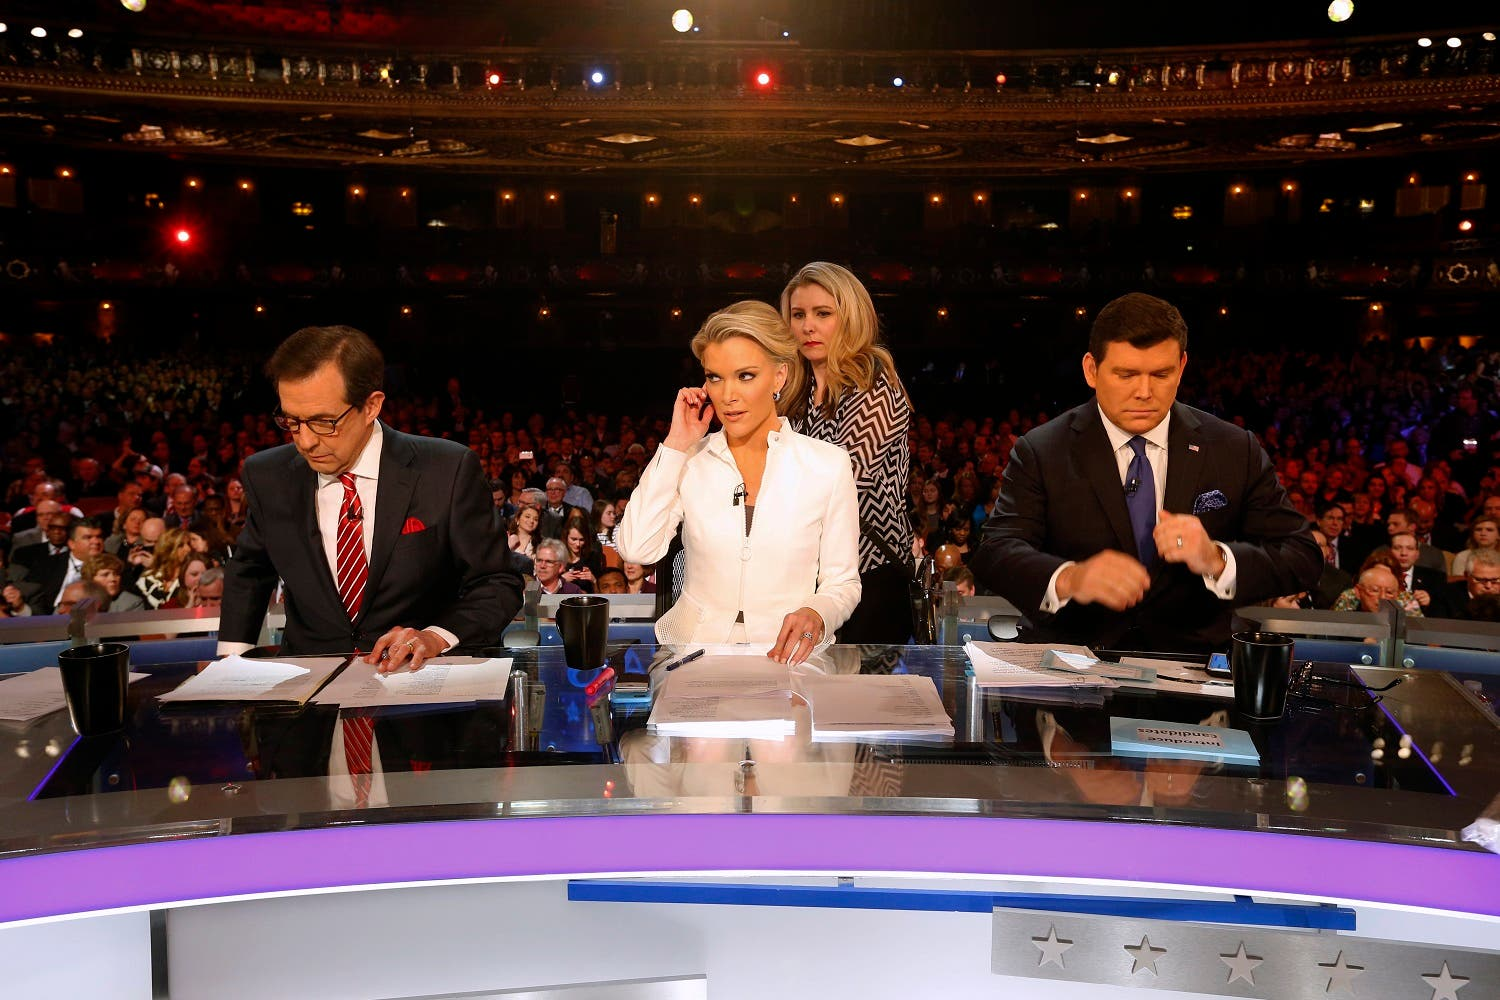 Moderators Bret Baier, Megyn Kelly and Chris Wallace take the stage before a Republican presidential primary debate at Fox Theatre, Thursday, March 3, 2016, in Detroit. (AP)